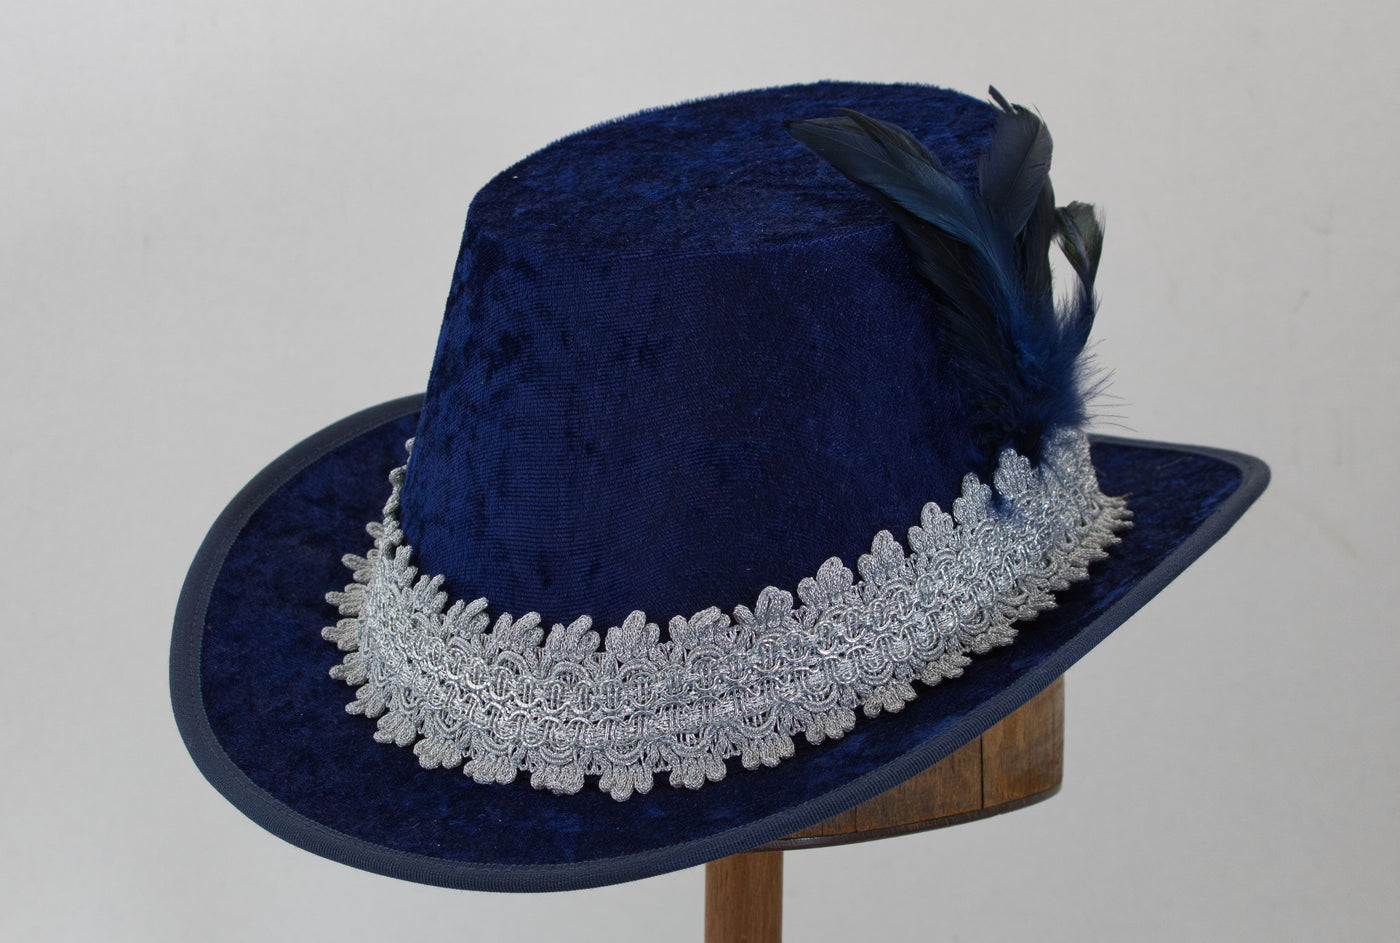 Crushed Velvet Tall Hat - Blue / Silver - Tall Toad